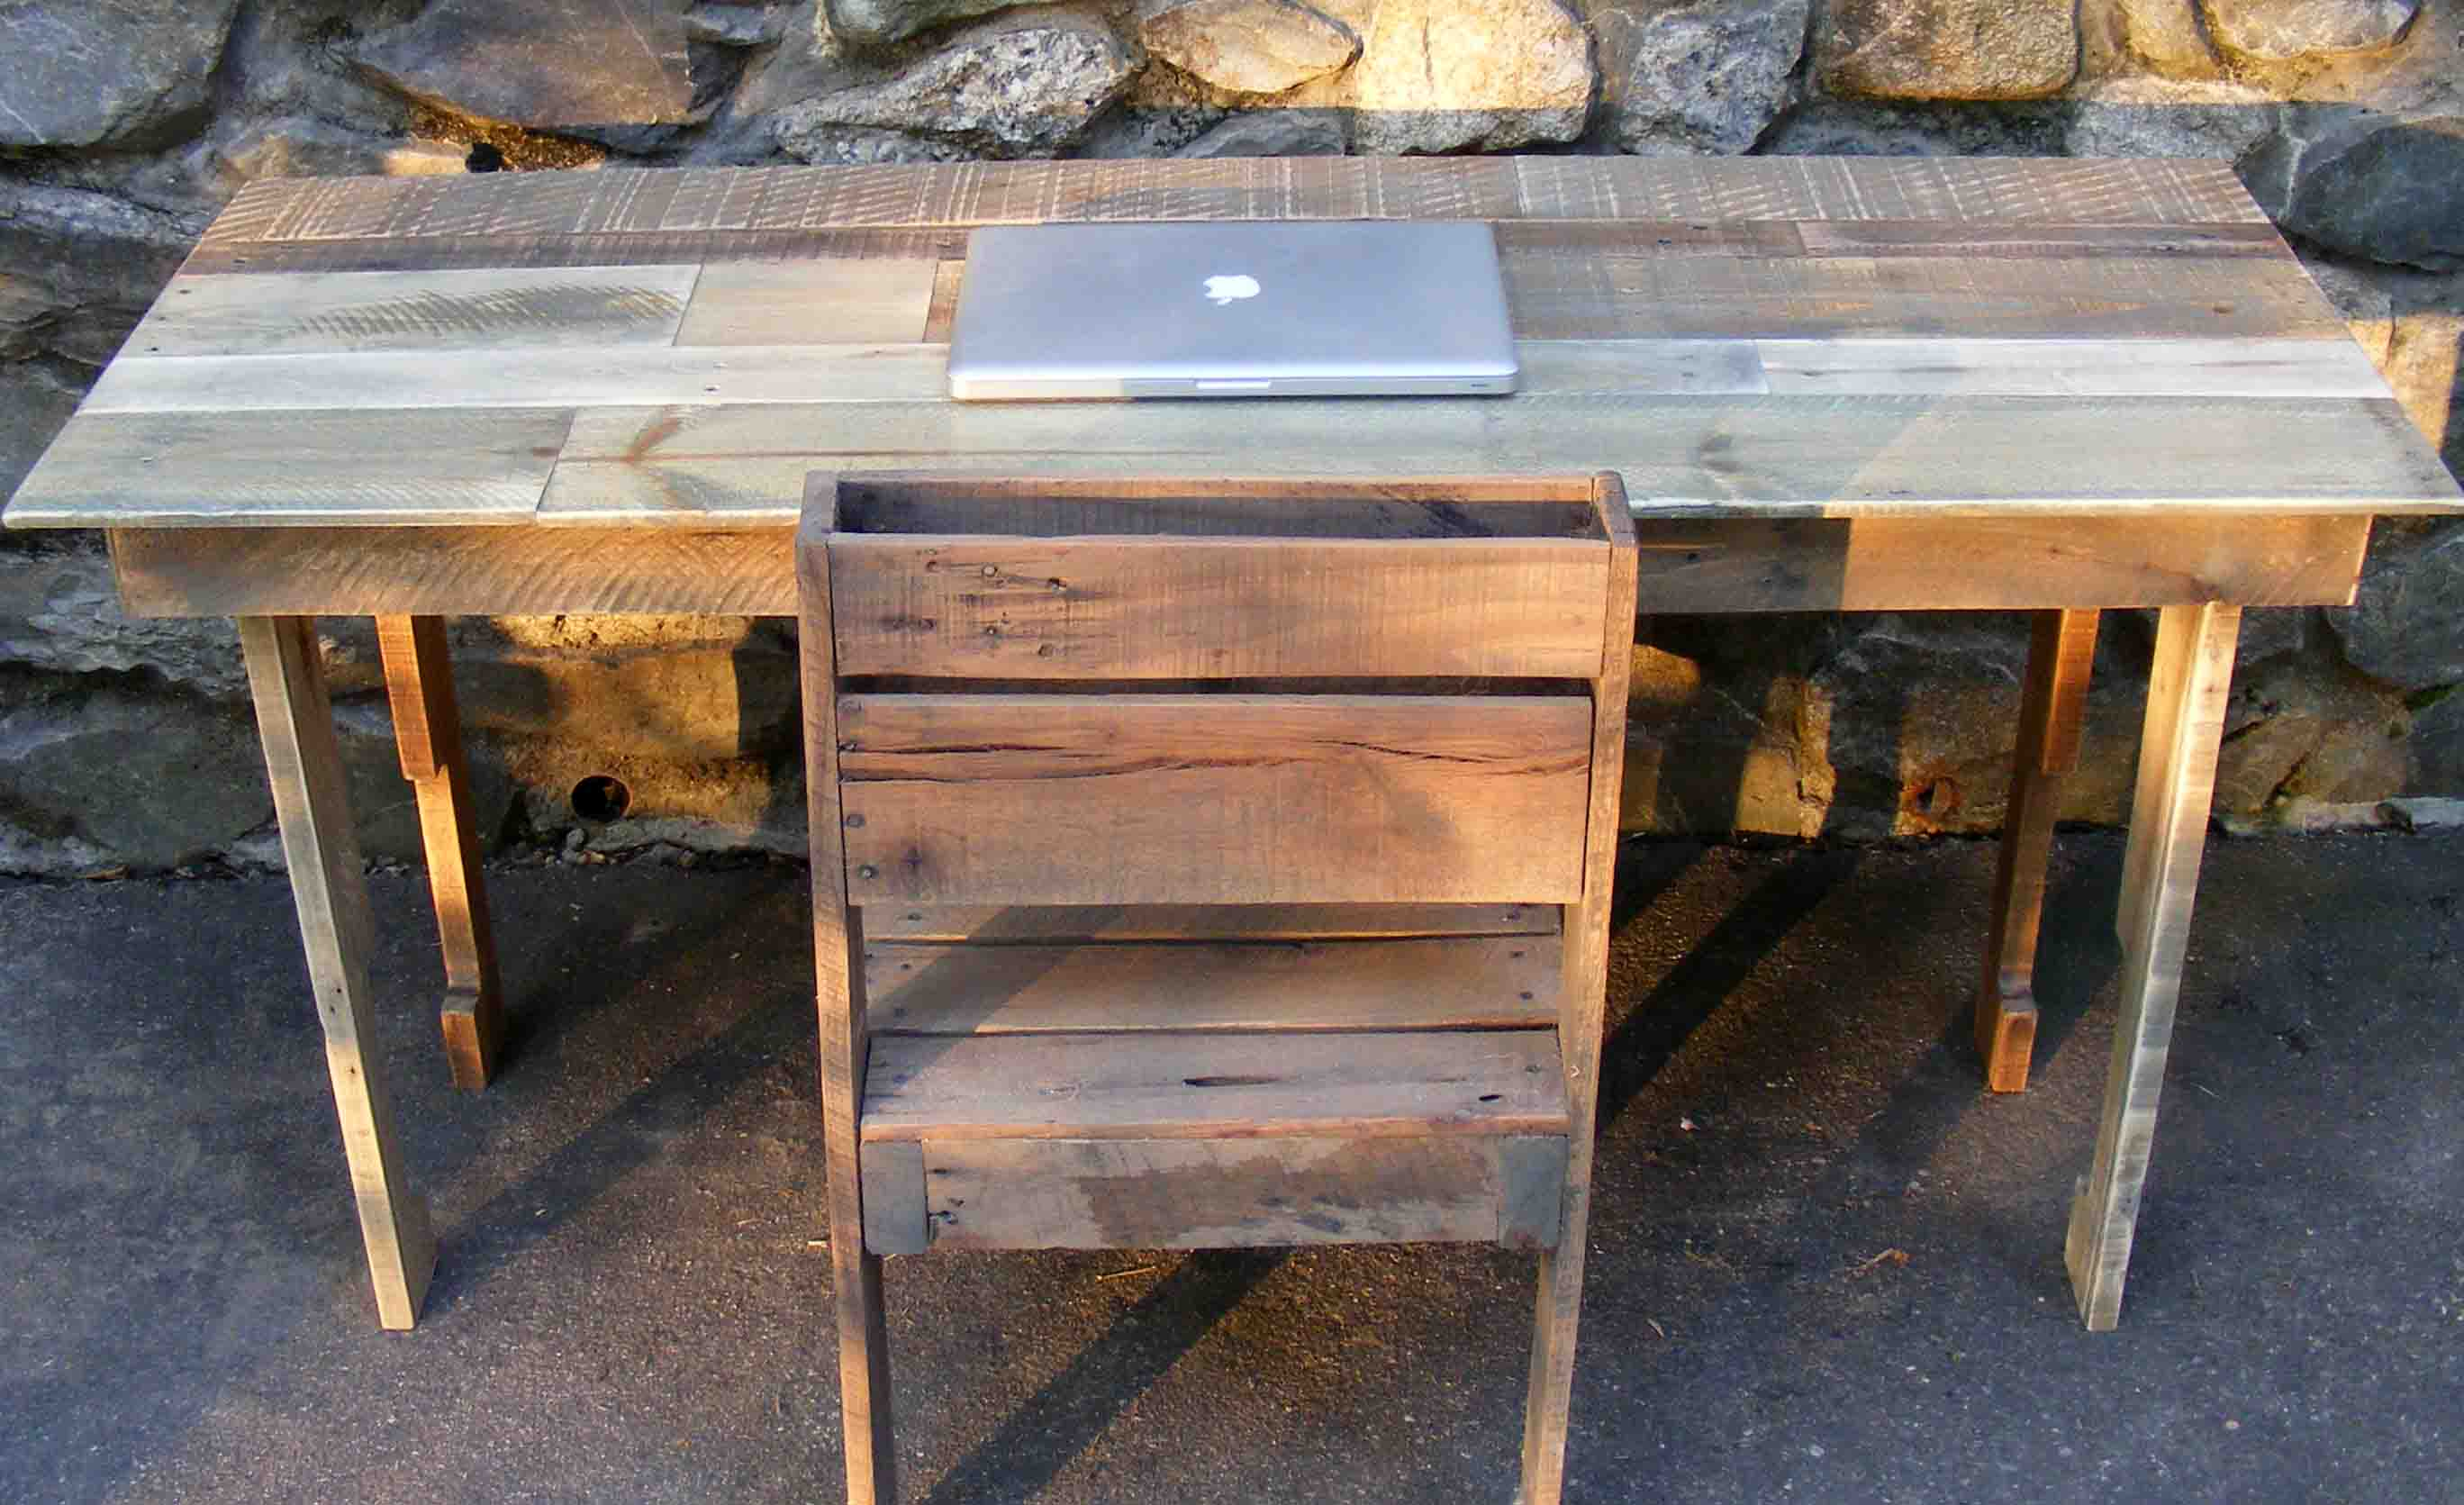 A Pallet Desk To Inspire